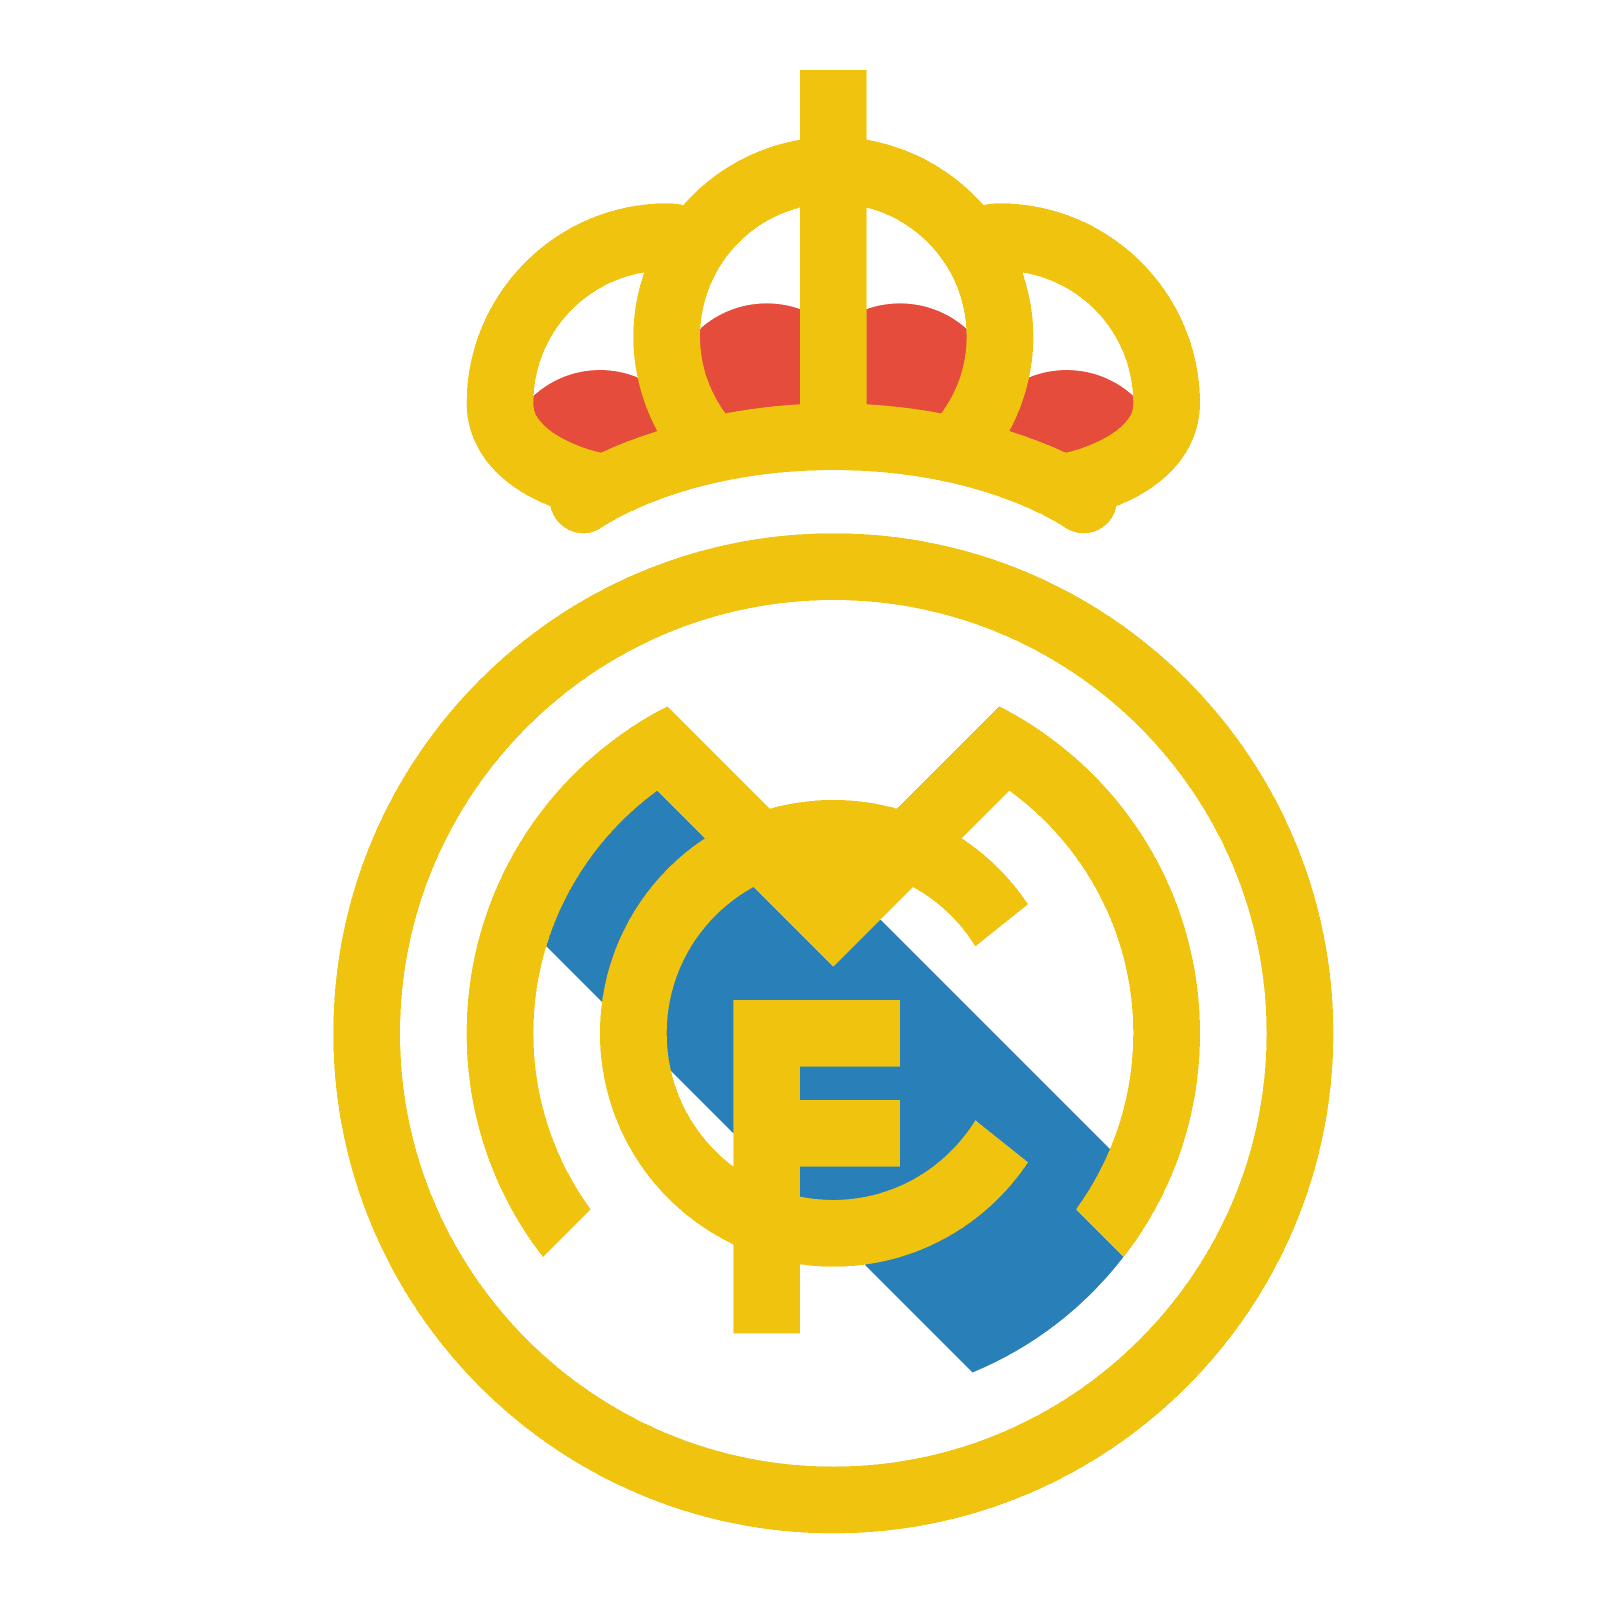 Real madrid logo png. Icon free download and